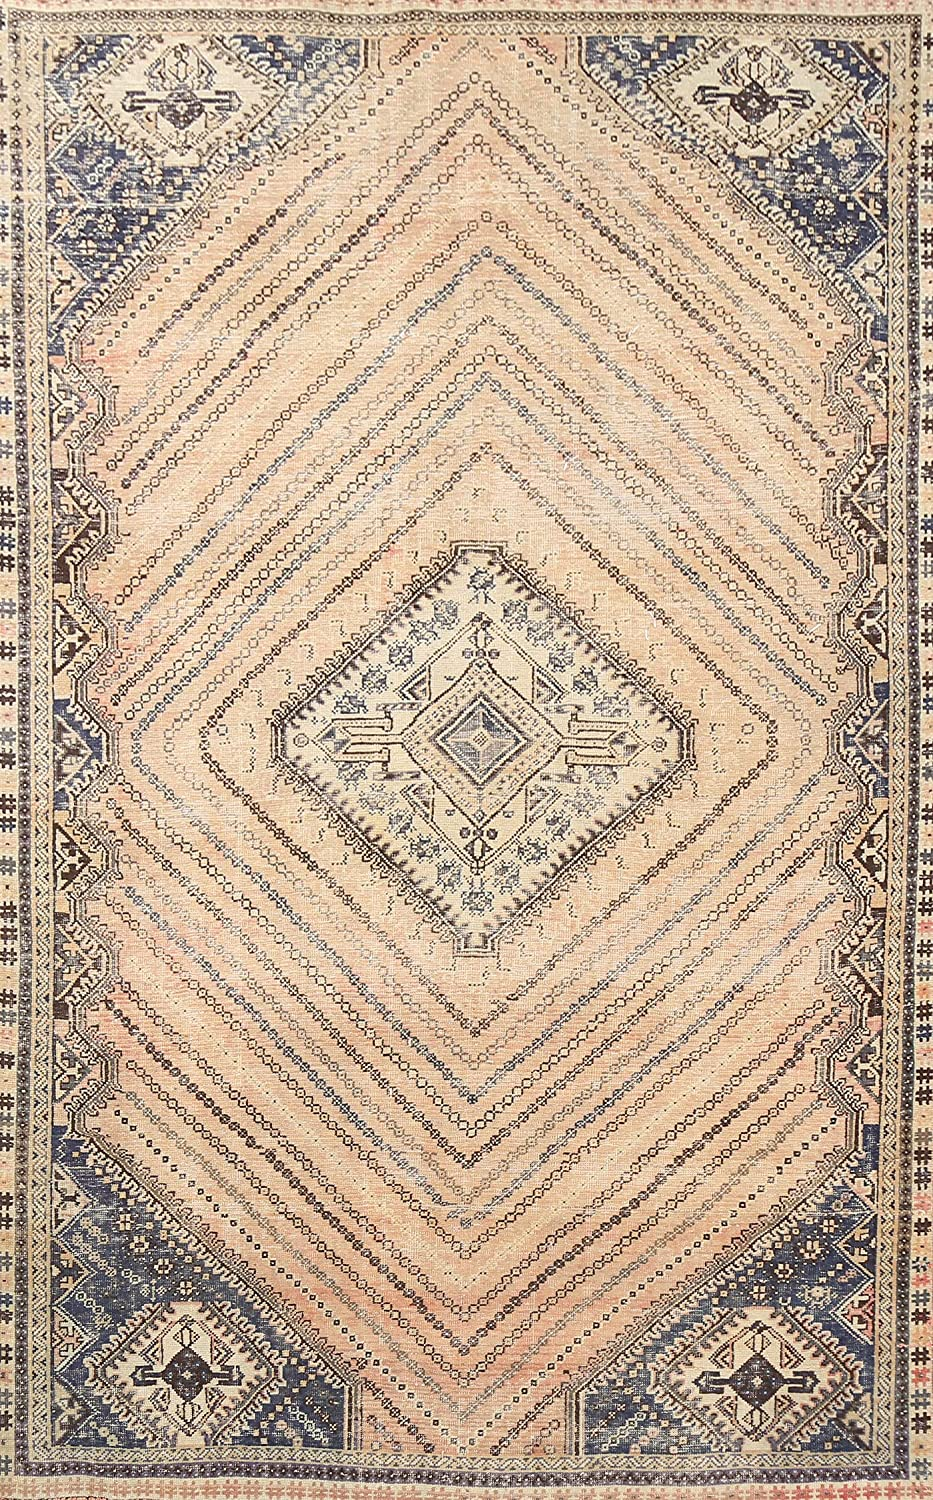 Antique Peach Challenge the lowest price Geometric Oriental Shiiraz Wool High quality new Hand-Knot Area Rug